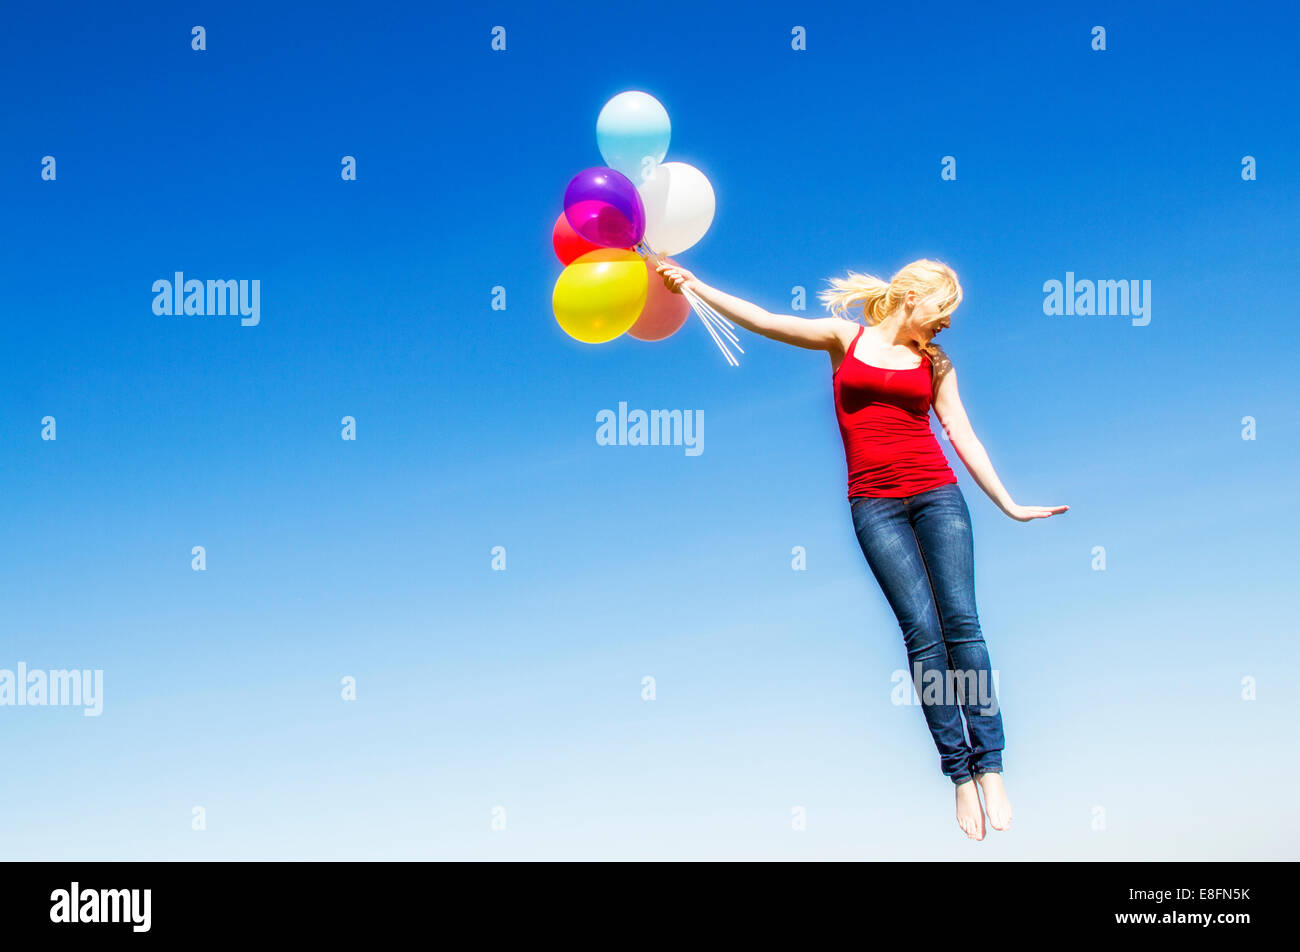 Portrait de femme de vol avec bouquet de ballons Photo Stock